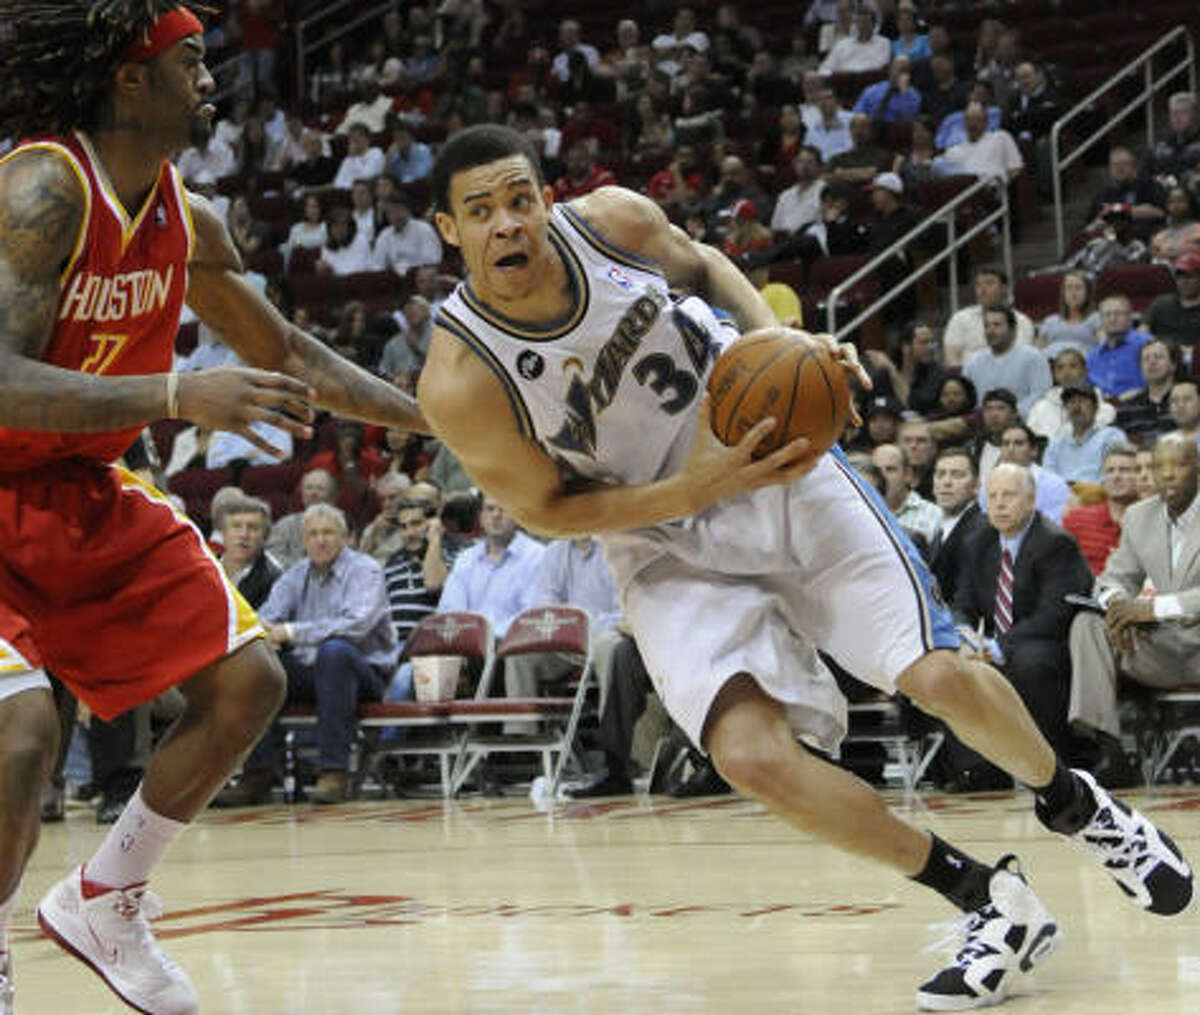 Wizards forward JaVale McGee drives the ball past Rockets forward Jordan Hill during the first half.